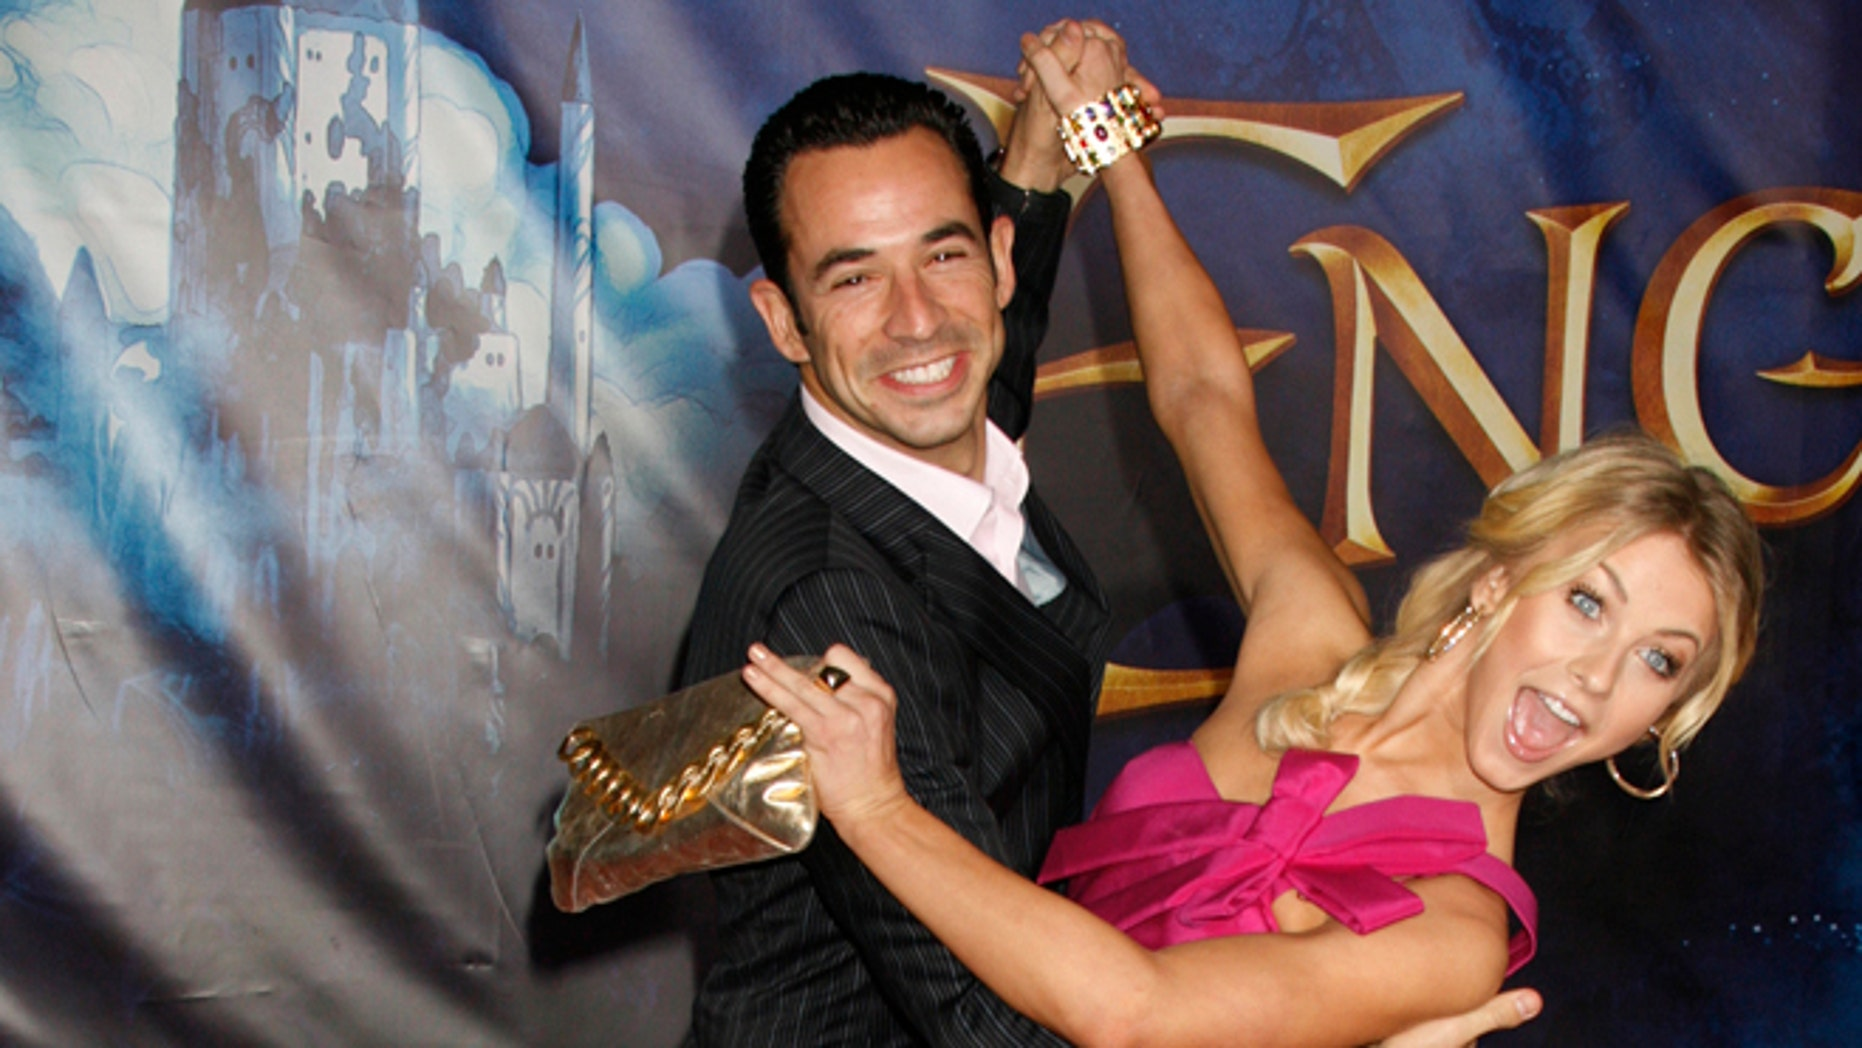 Dancing With The Stars Television Reality Show Contestants Brazilian Race Car Driver Helio Castroneves